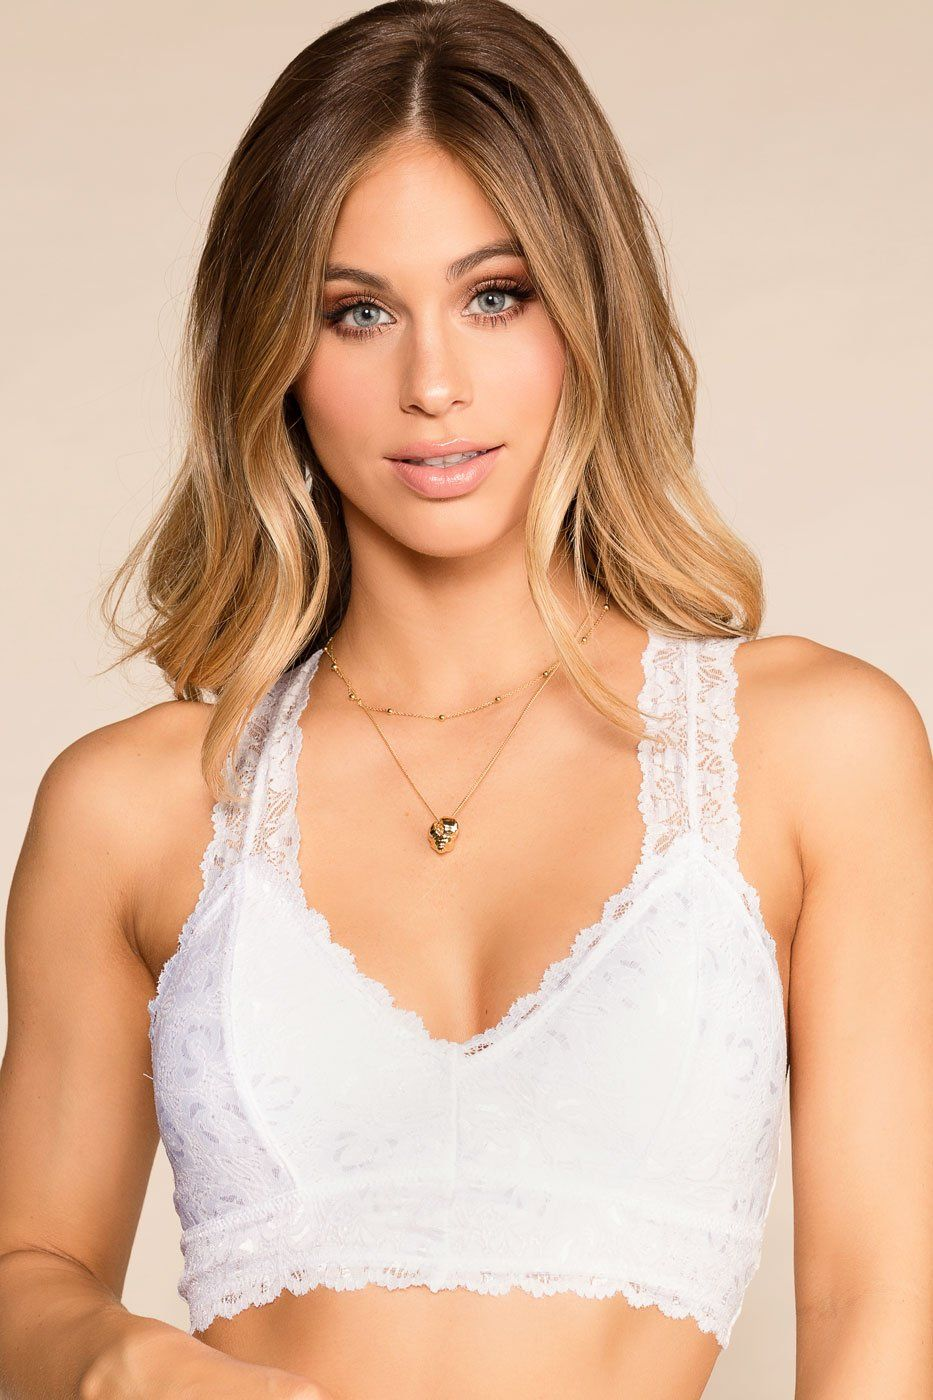 c9544cd2151 Cherished White Lace Bralette